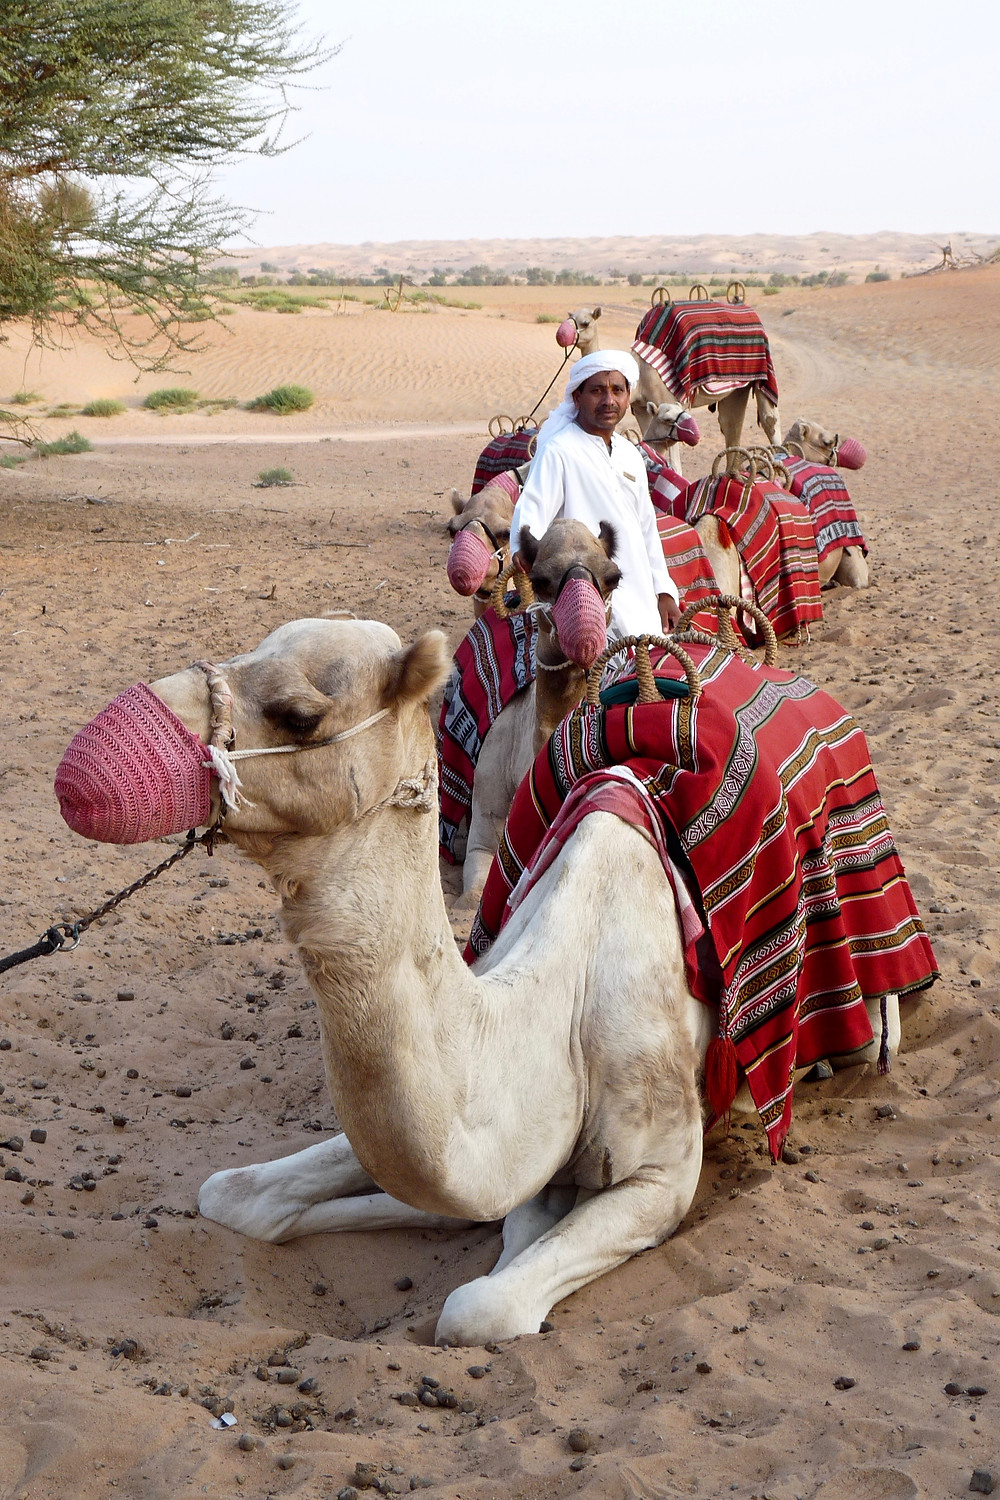 Caravan of camels with Arabian guide at Al Maha, Dubai